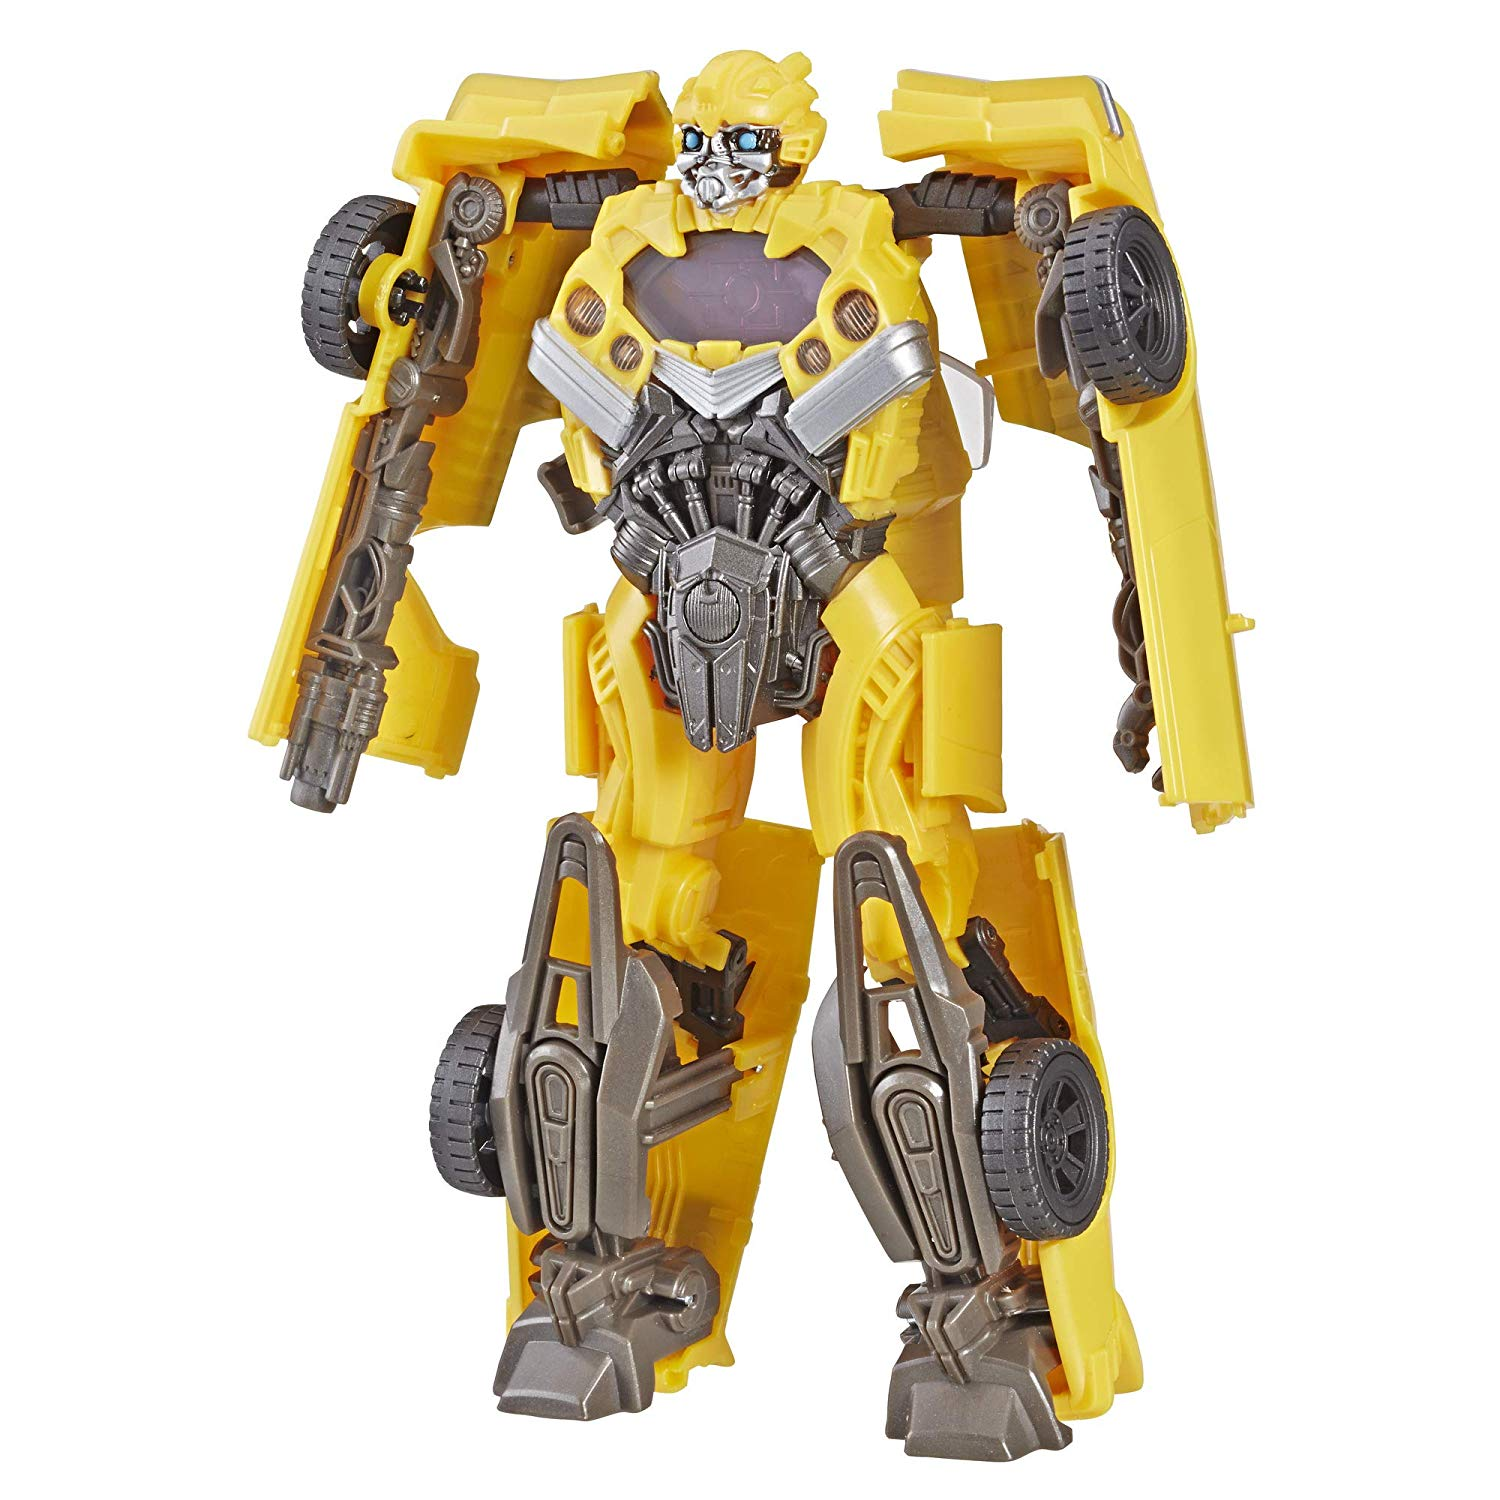 Transformers: Mission Vision - Bumblebee Subline Revealed ...